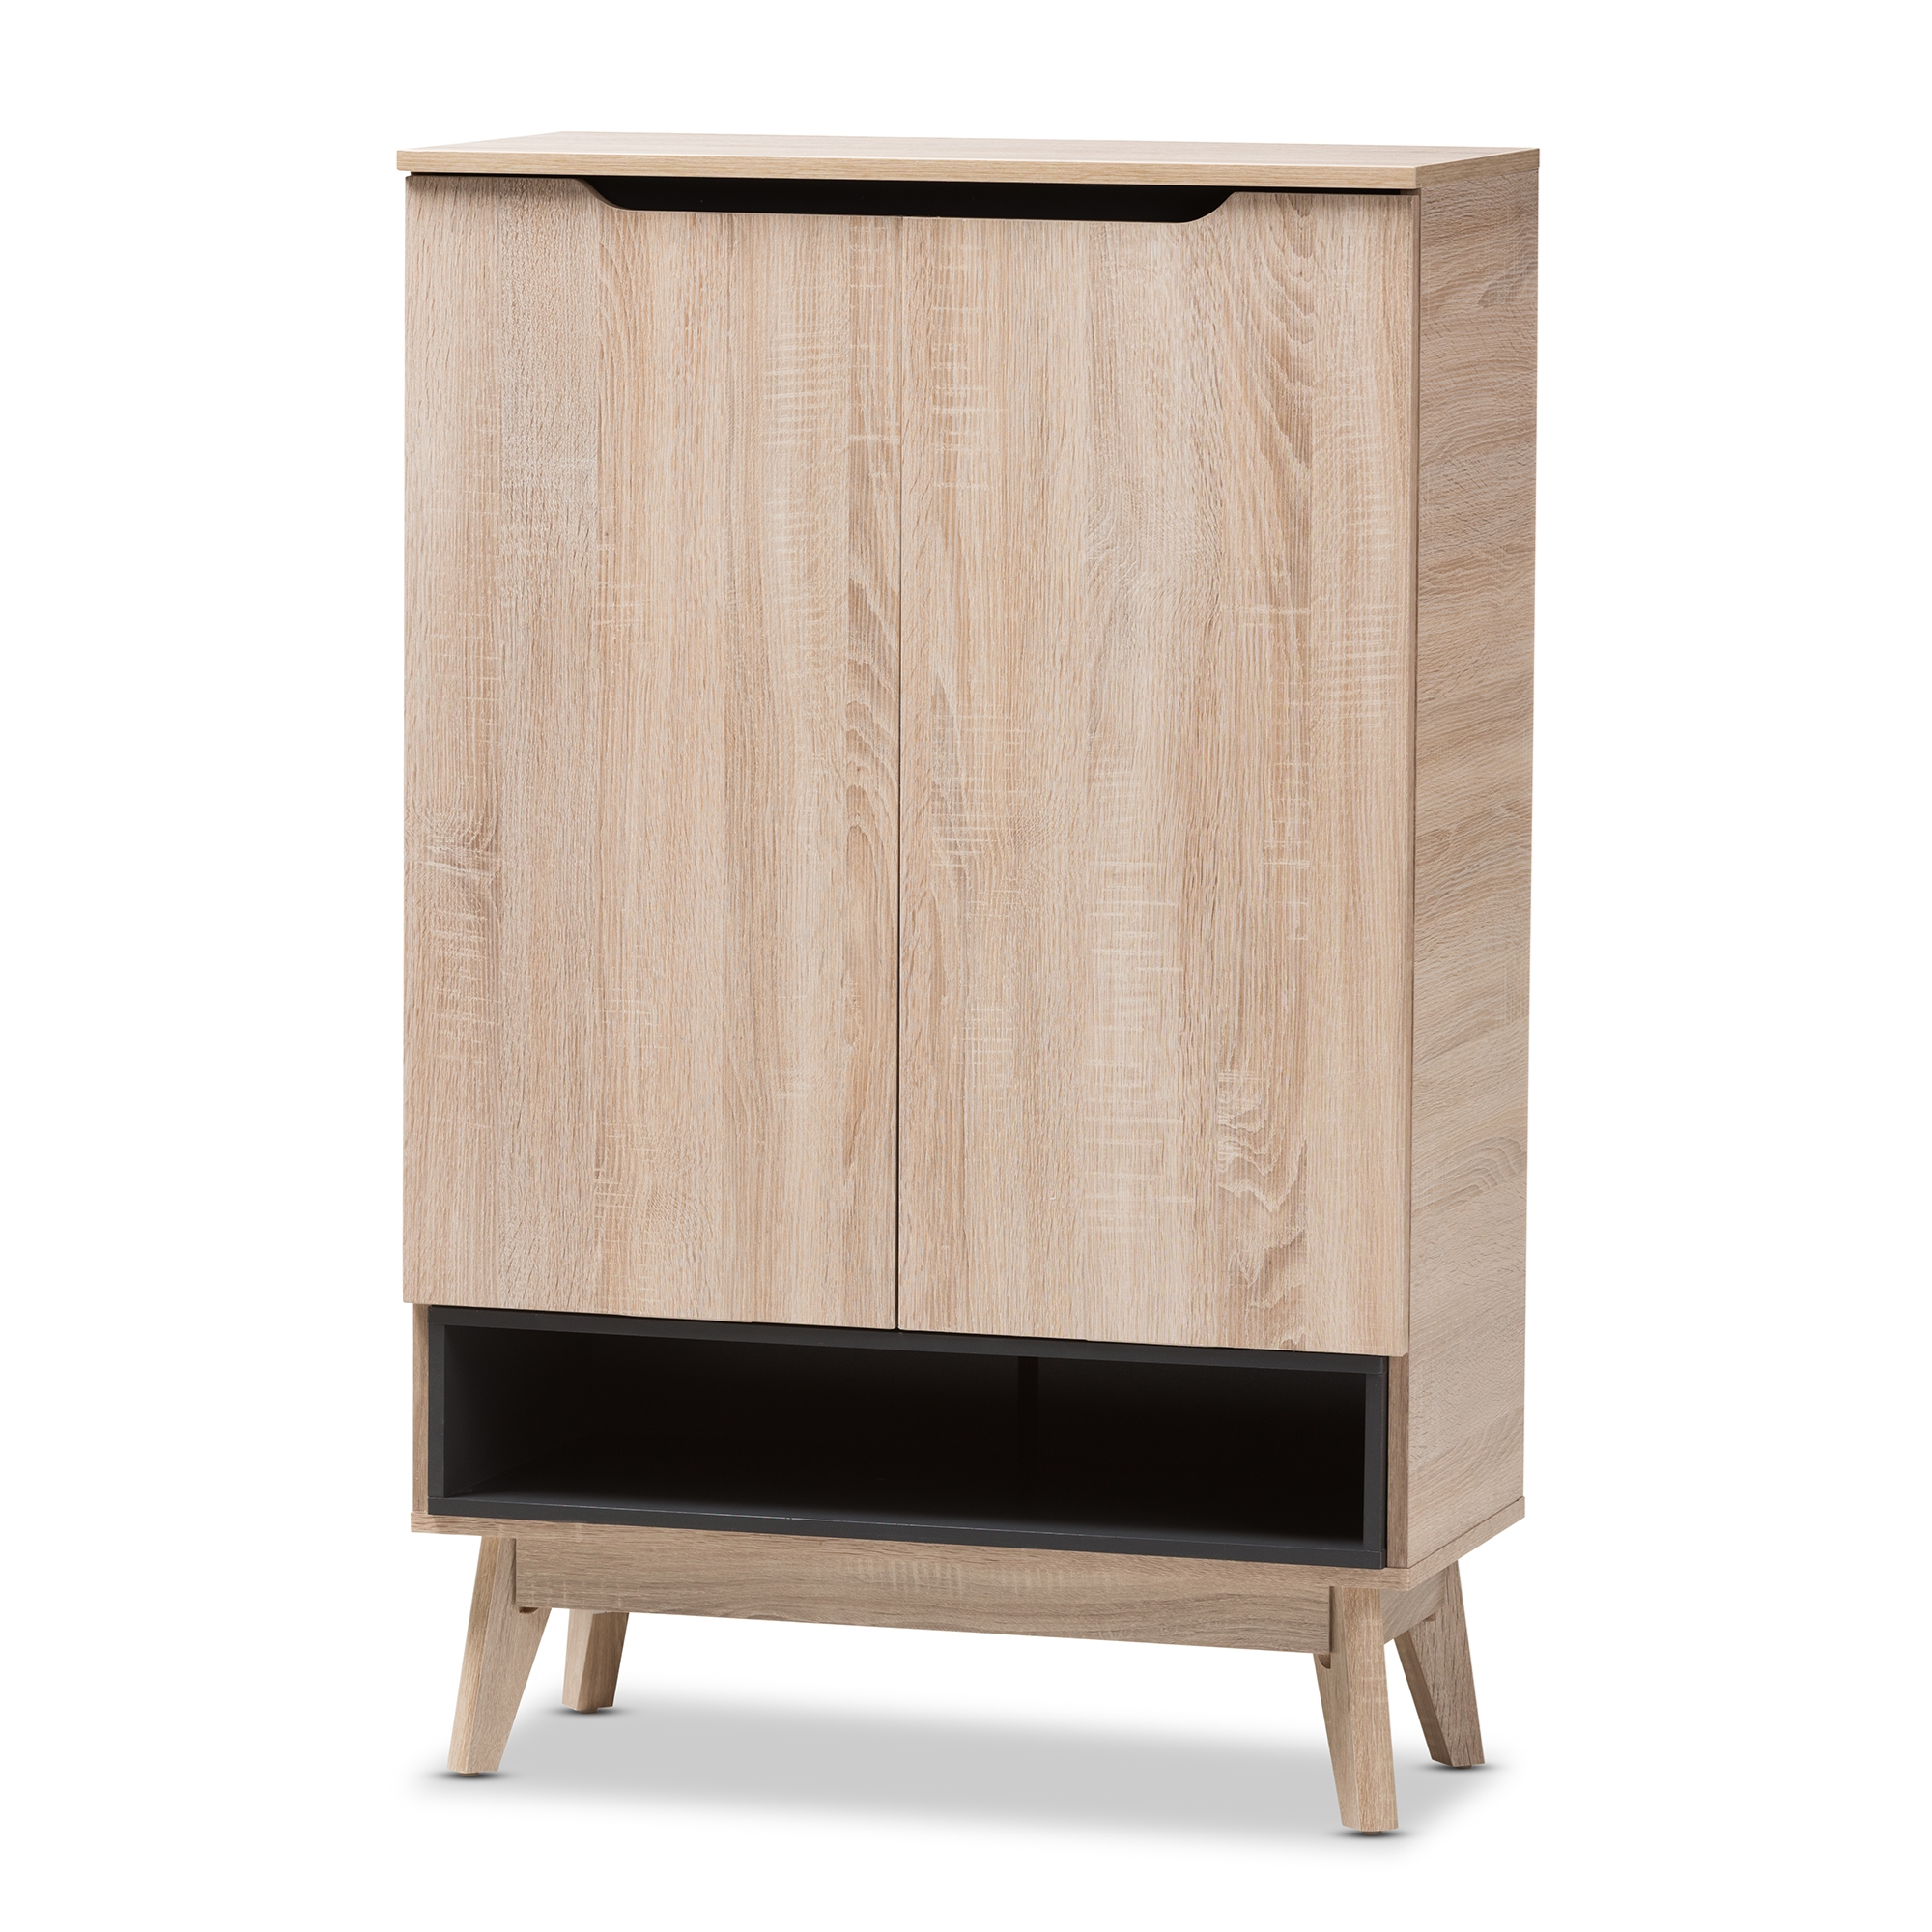 Baxton Studio Fella Mid-Century Modern Two-Tone Oak And